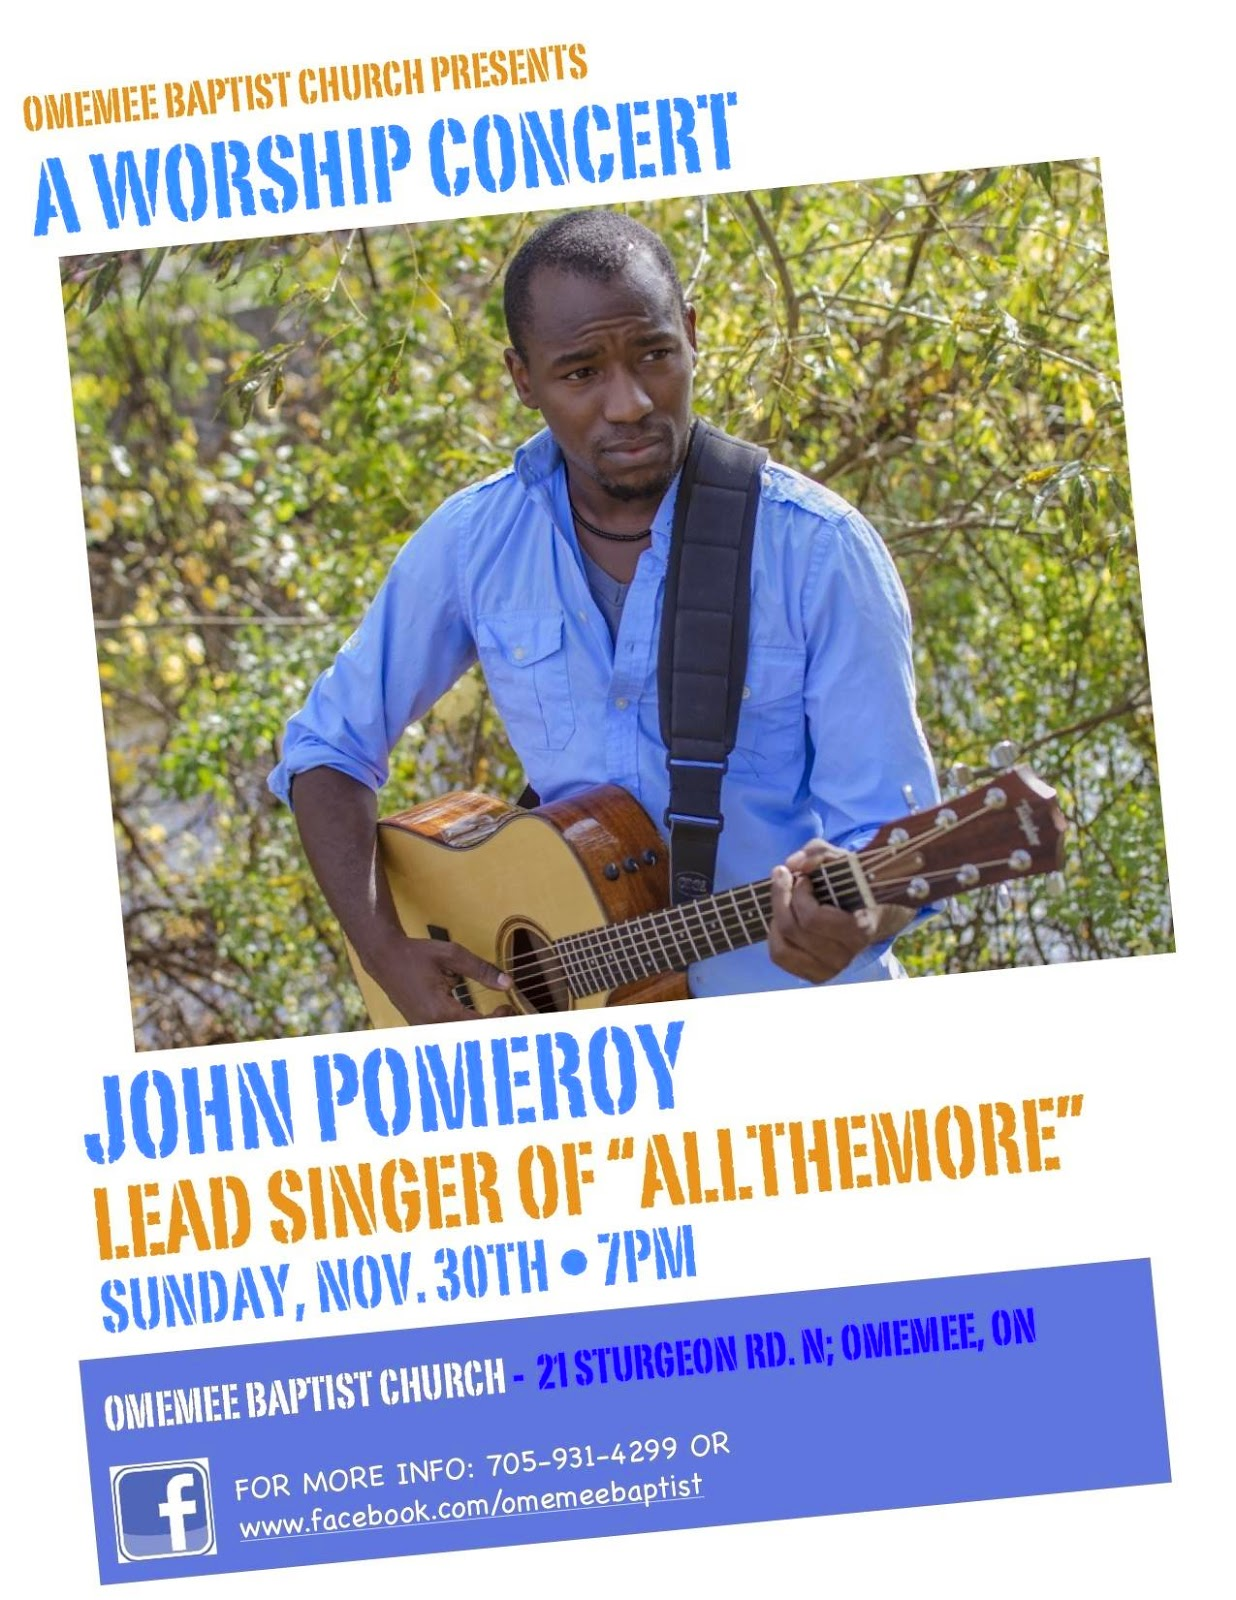 image  poster Omemee Baptist Church Hosts Worship Concert Featuring John Pomeroy